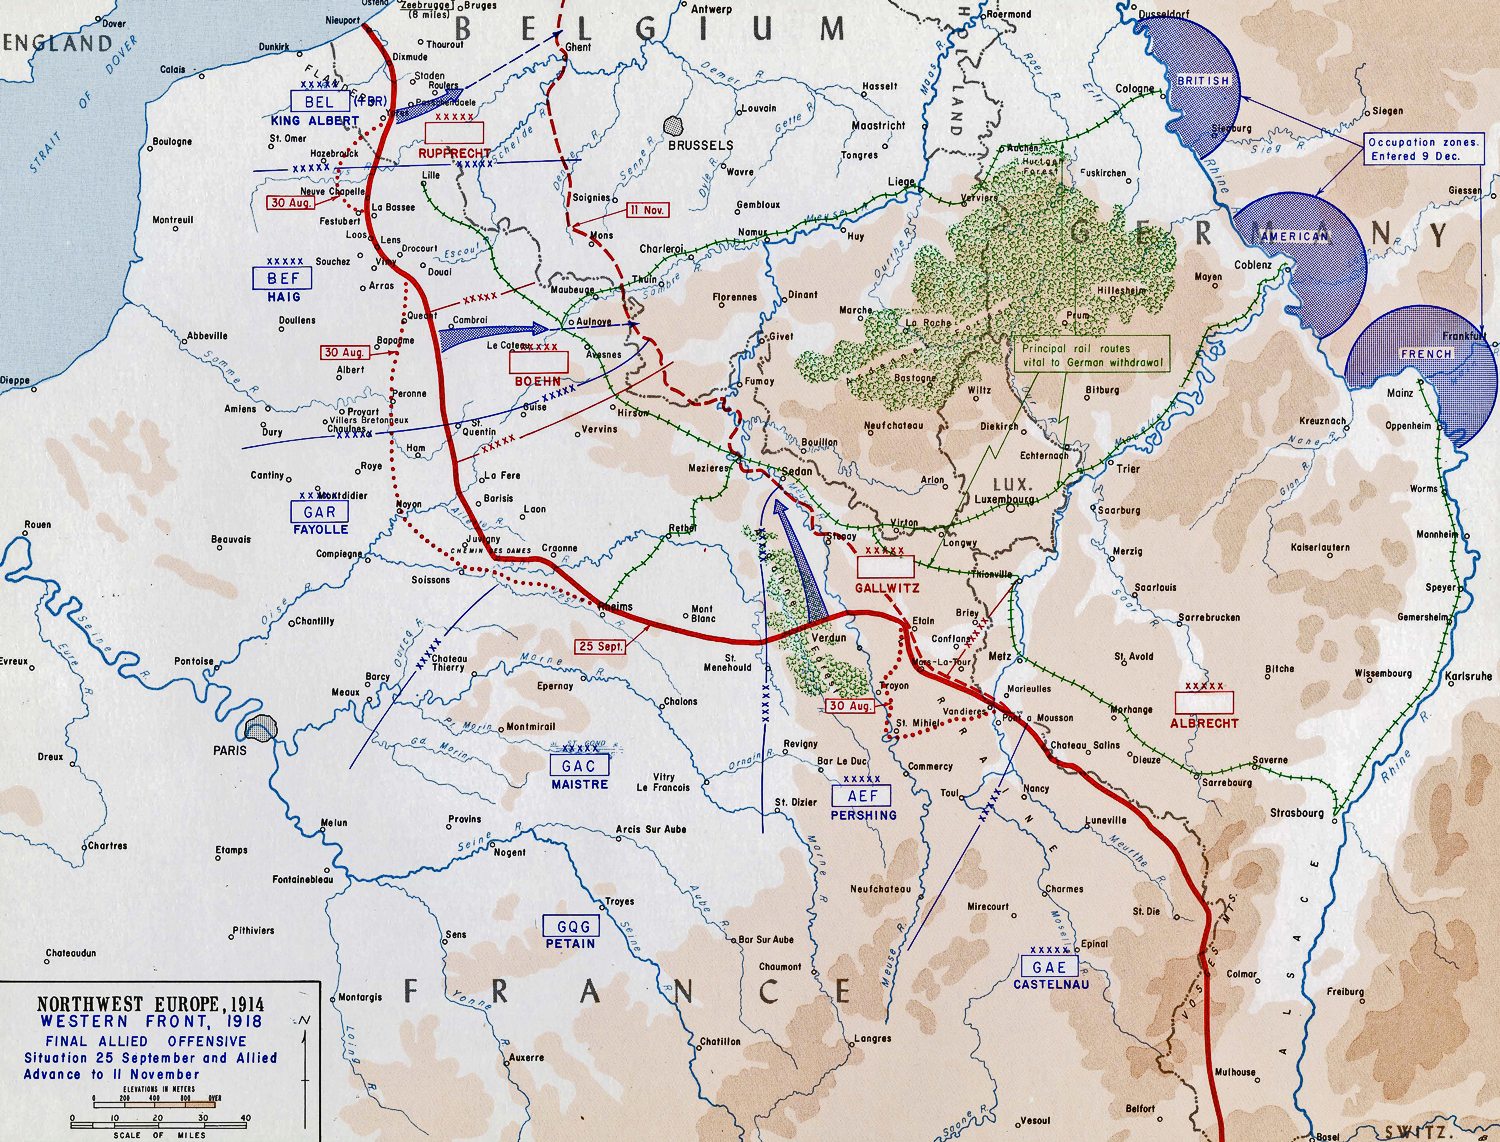 Map of WWI: Western Front - Sept 25-Nov 11, 1918 - Final Allied Offensive